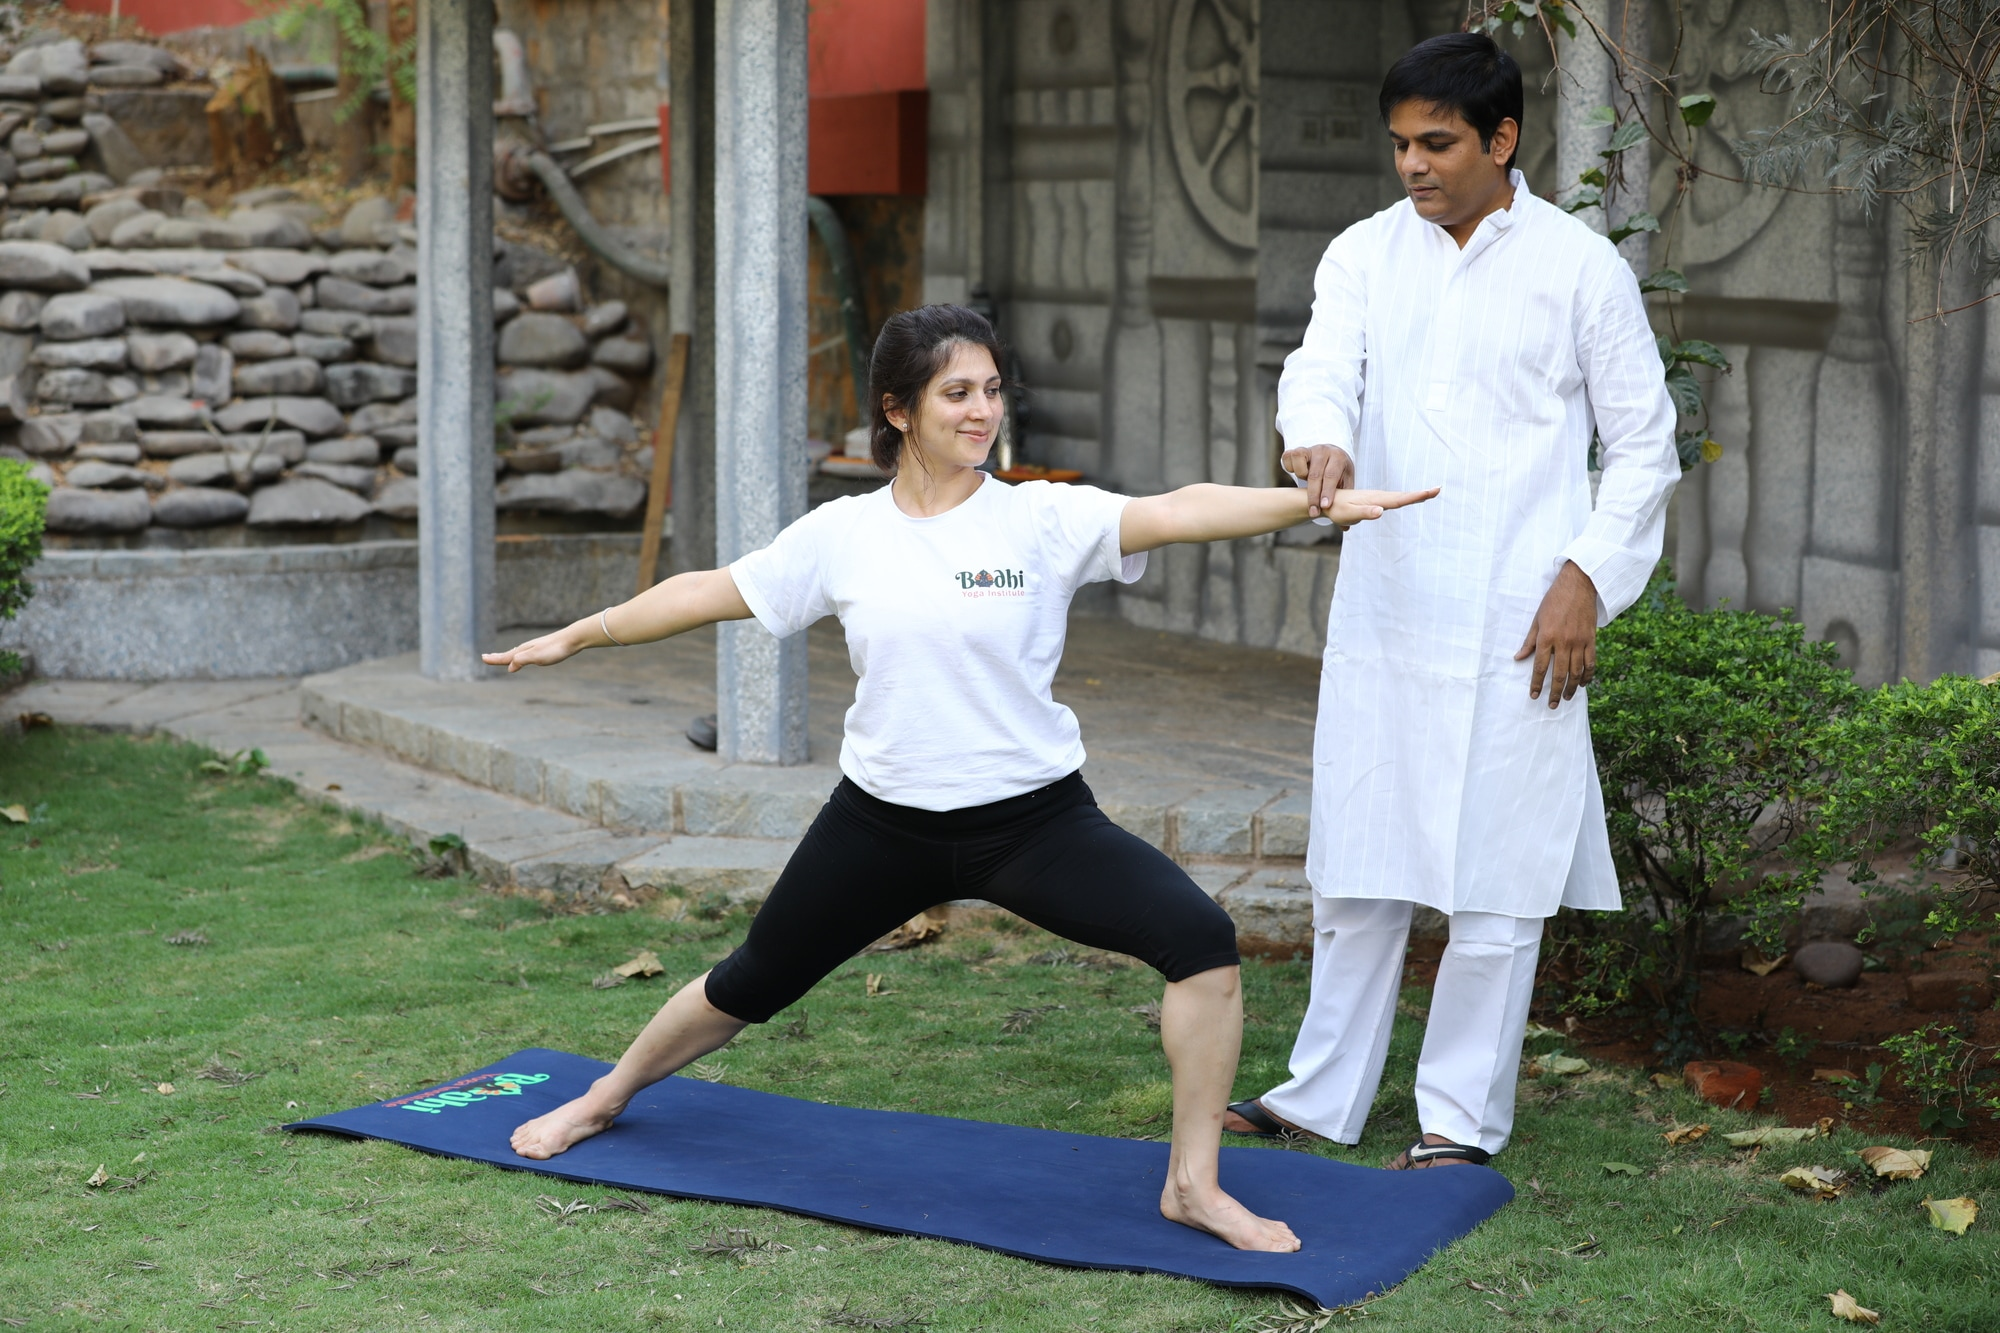 Bodhi Yoga Institute in Gachibowli, Hyderabad